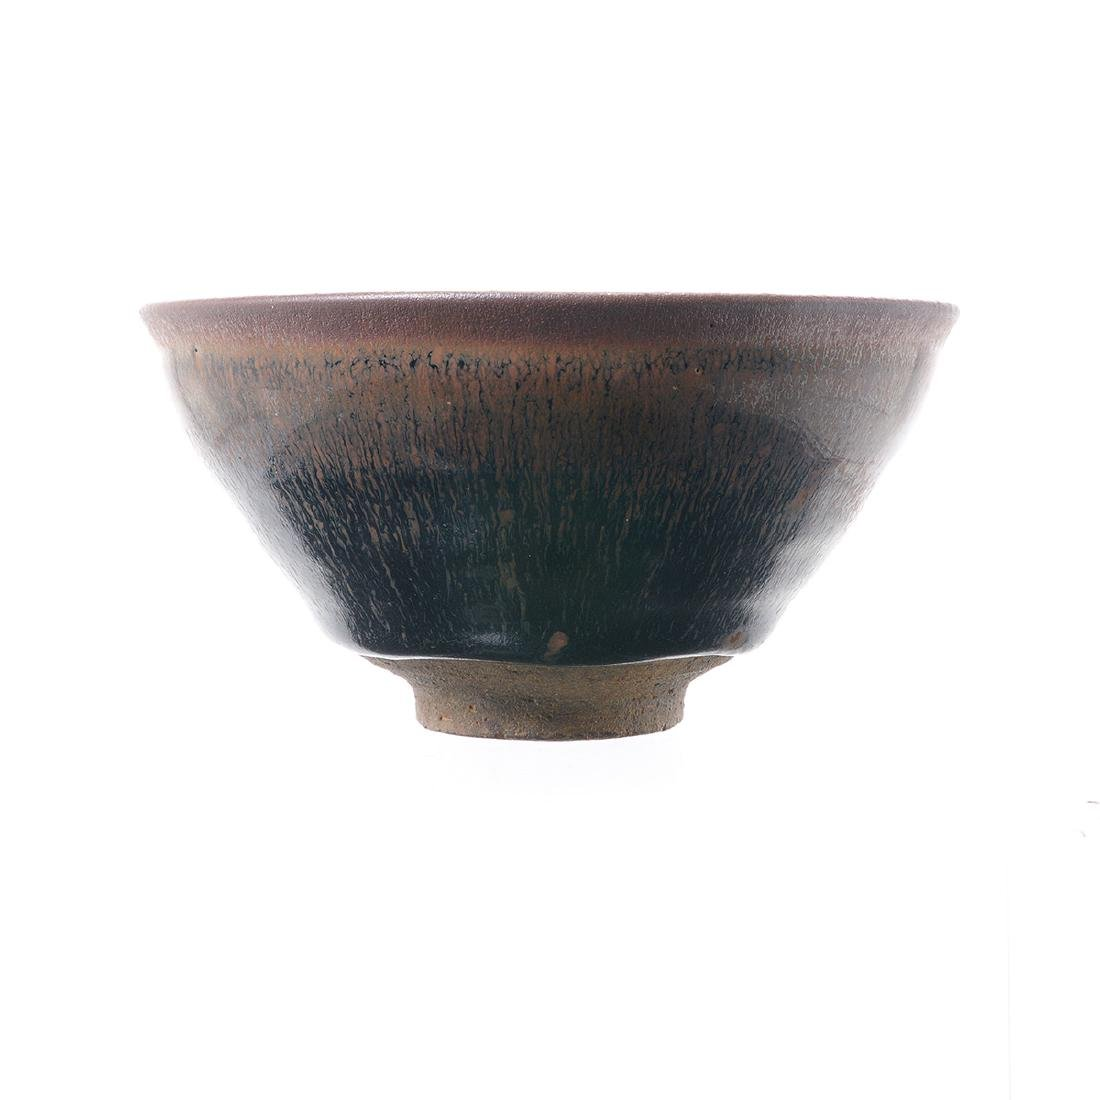 Jian 'Hare's Fur' Tea Bowl - 2